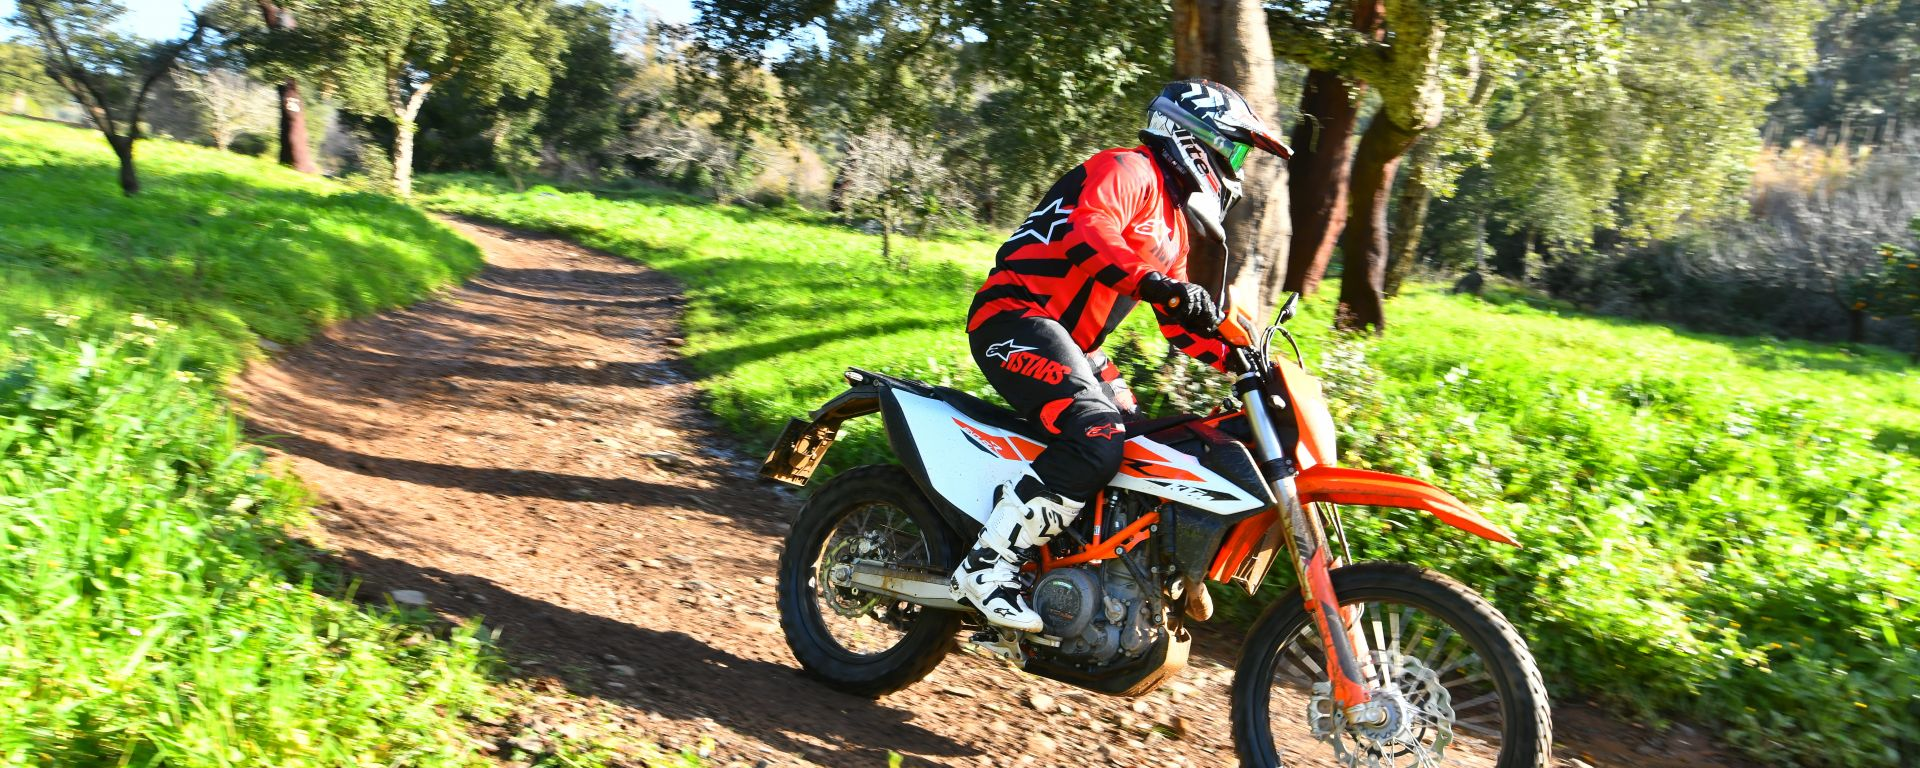 KTM 690 Enduro R 2019: la dual purpose messa alla prova